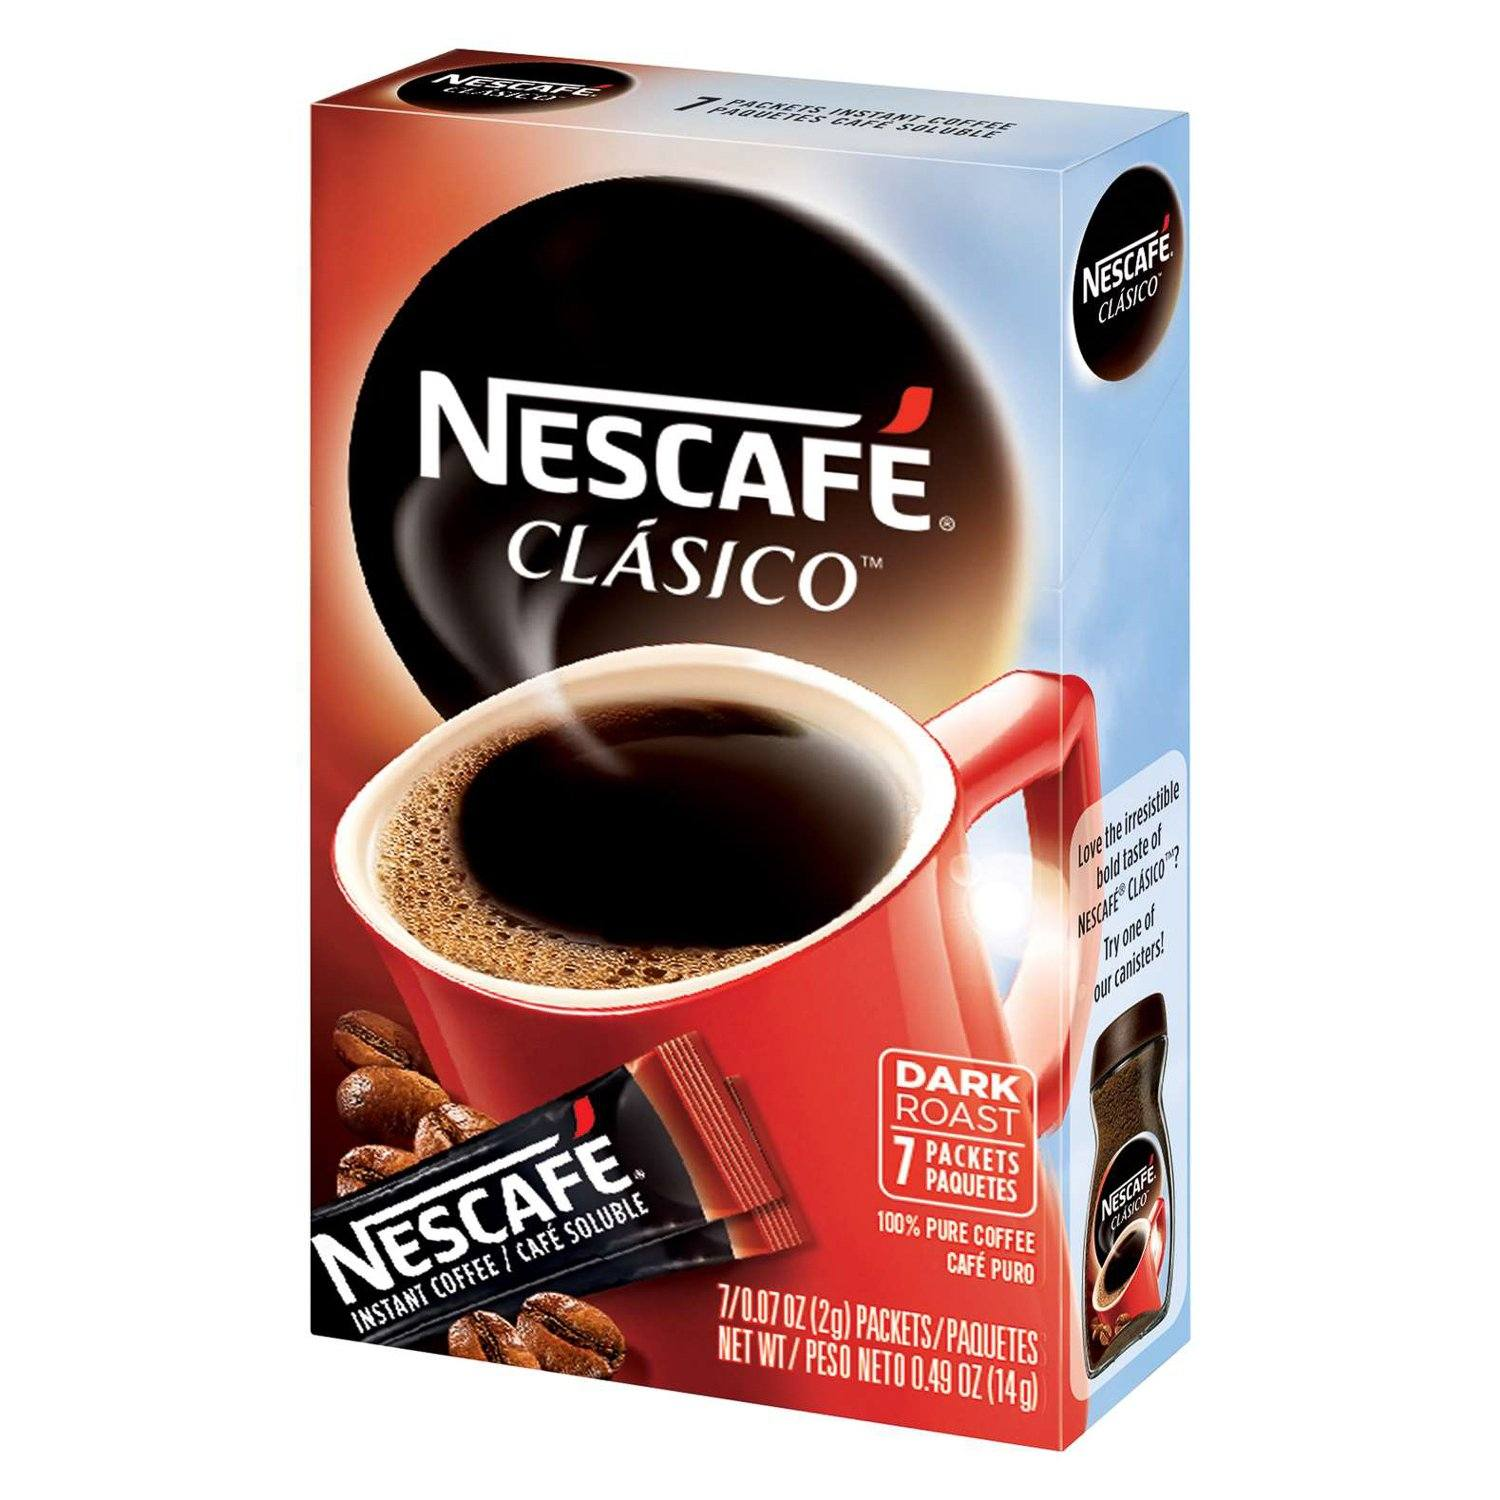 NESCAFÉ CLASICO Instant Coffee NESCAFÉ Dark Roast 0.07 Oz-7 Count